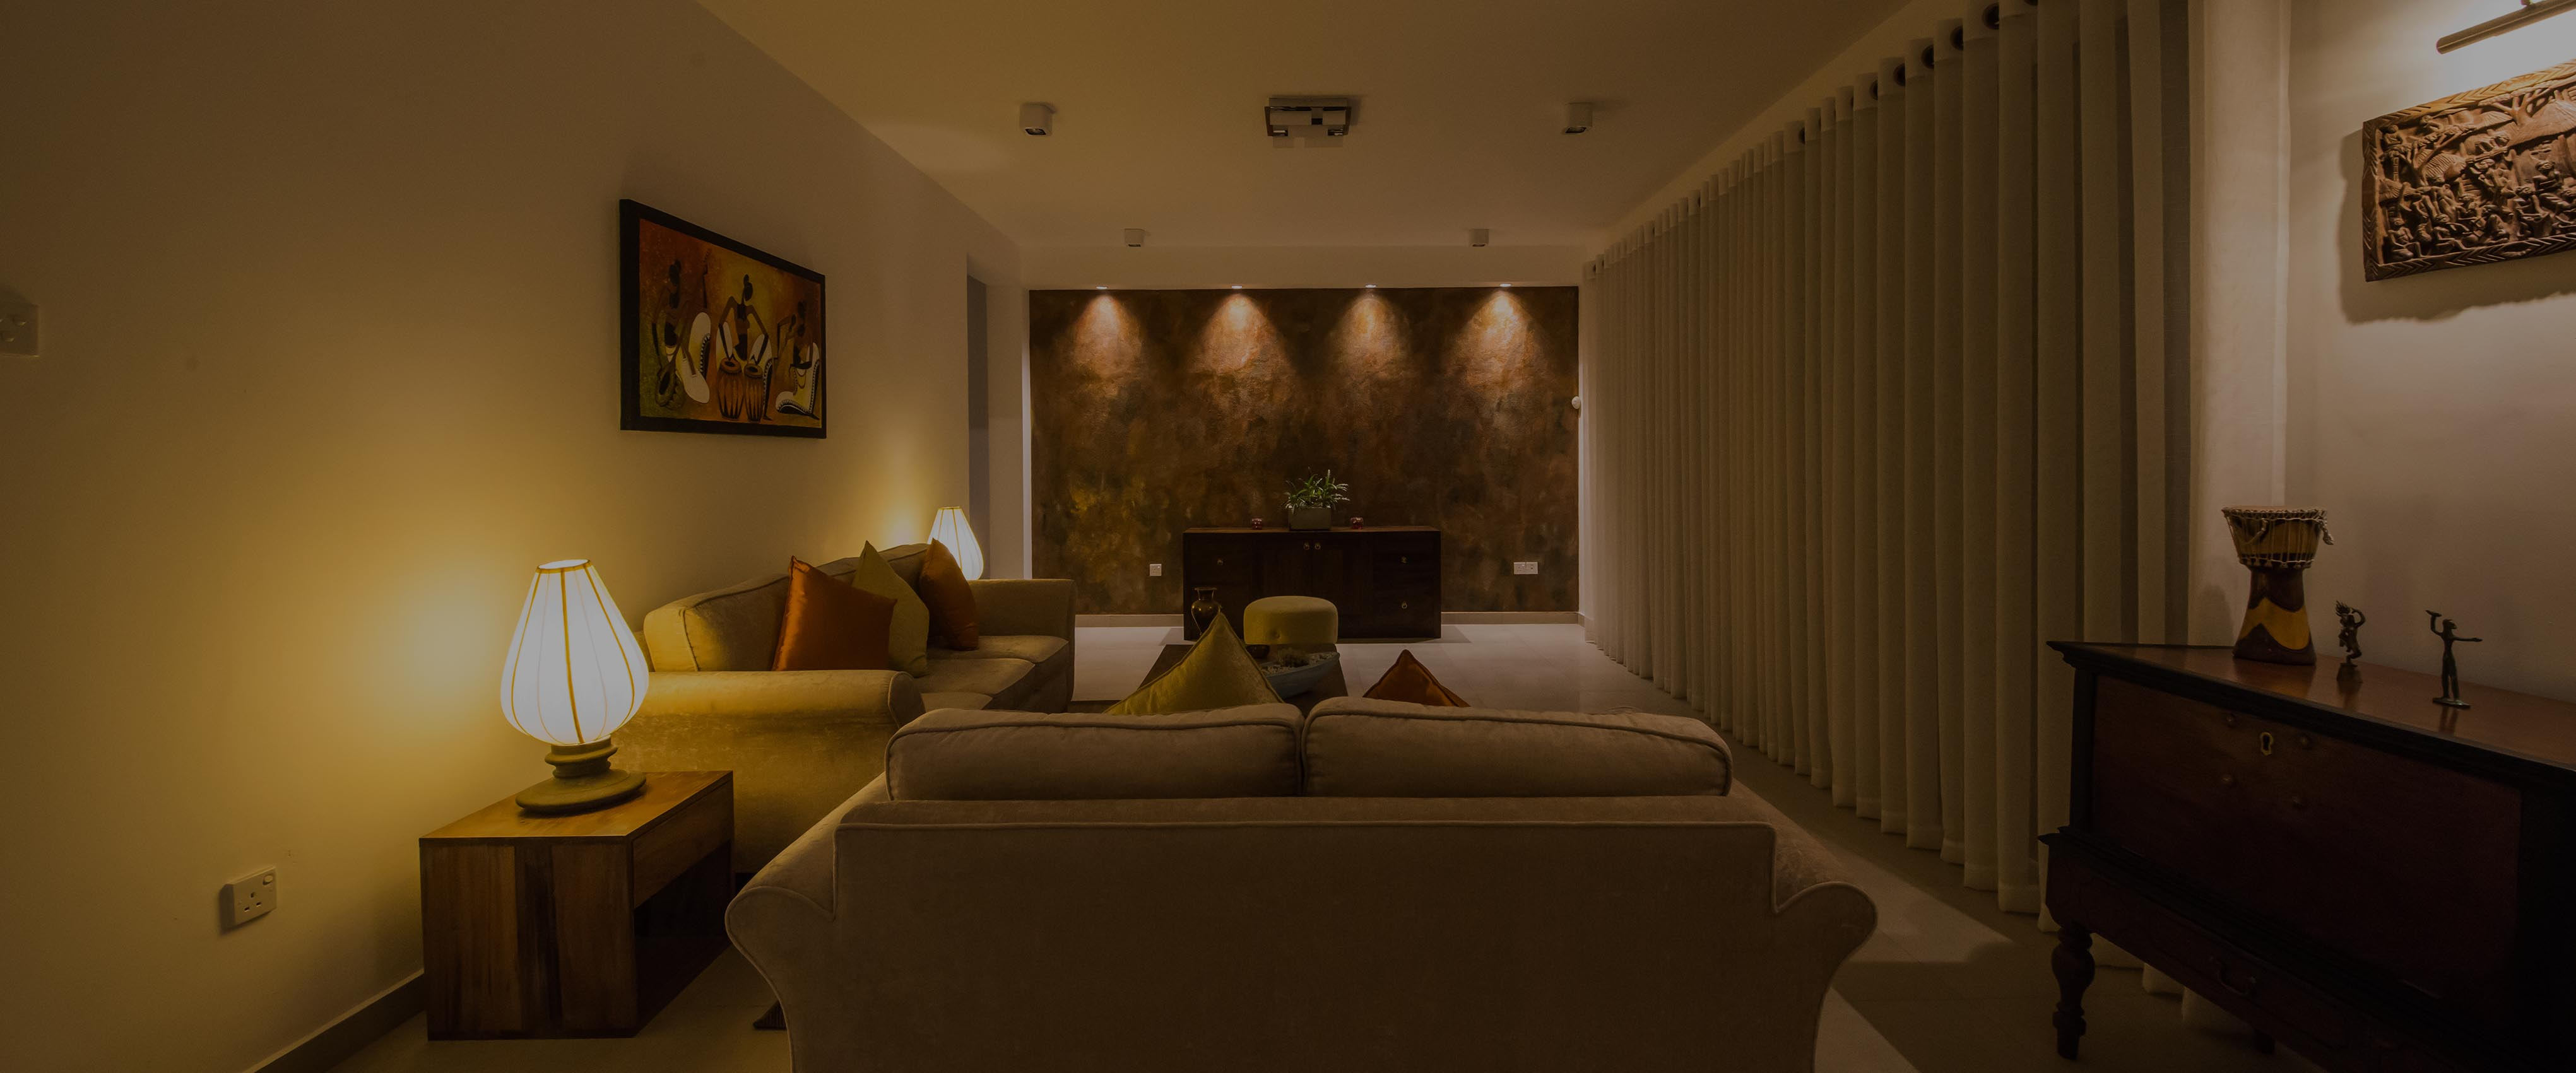 living room with lighting control